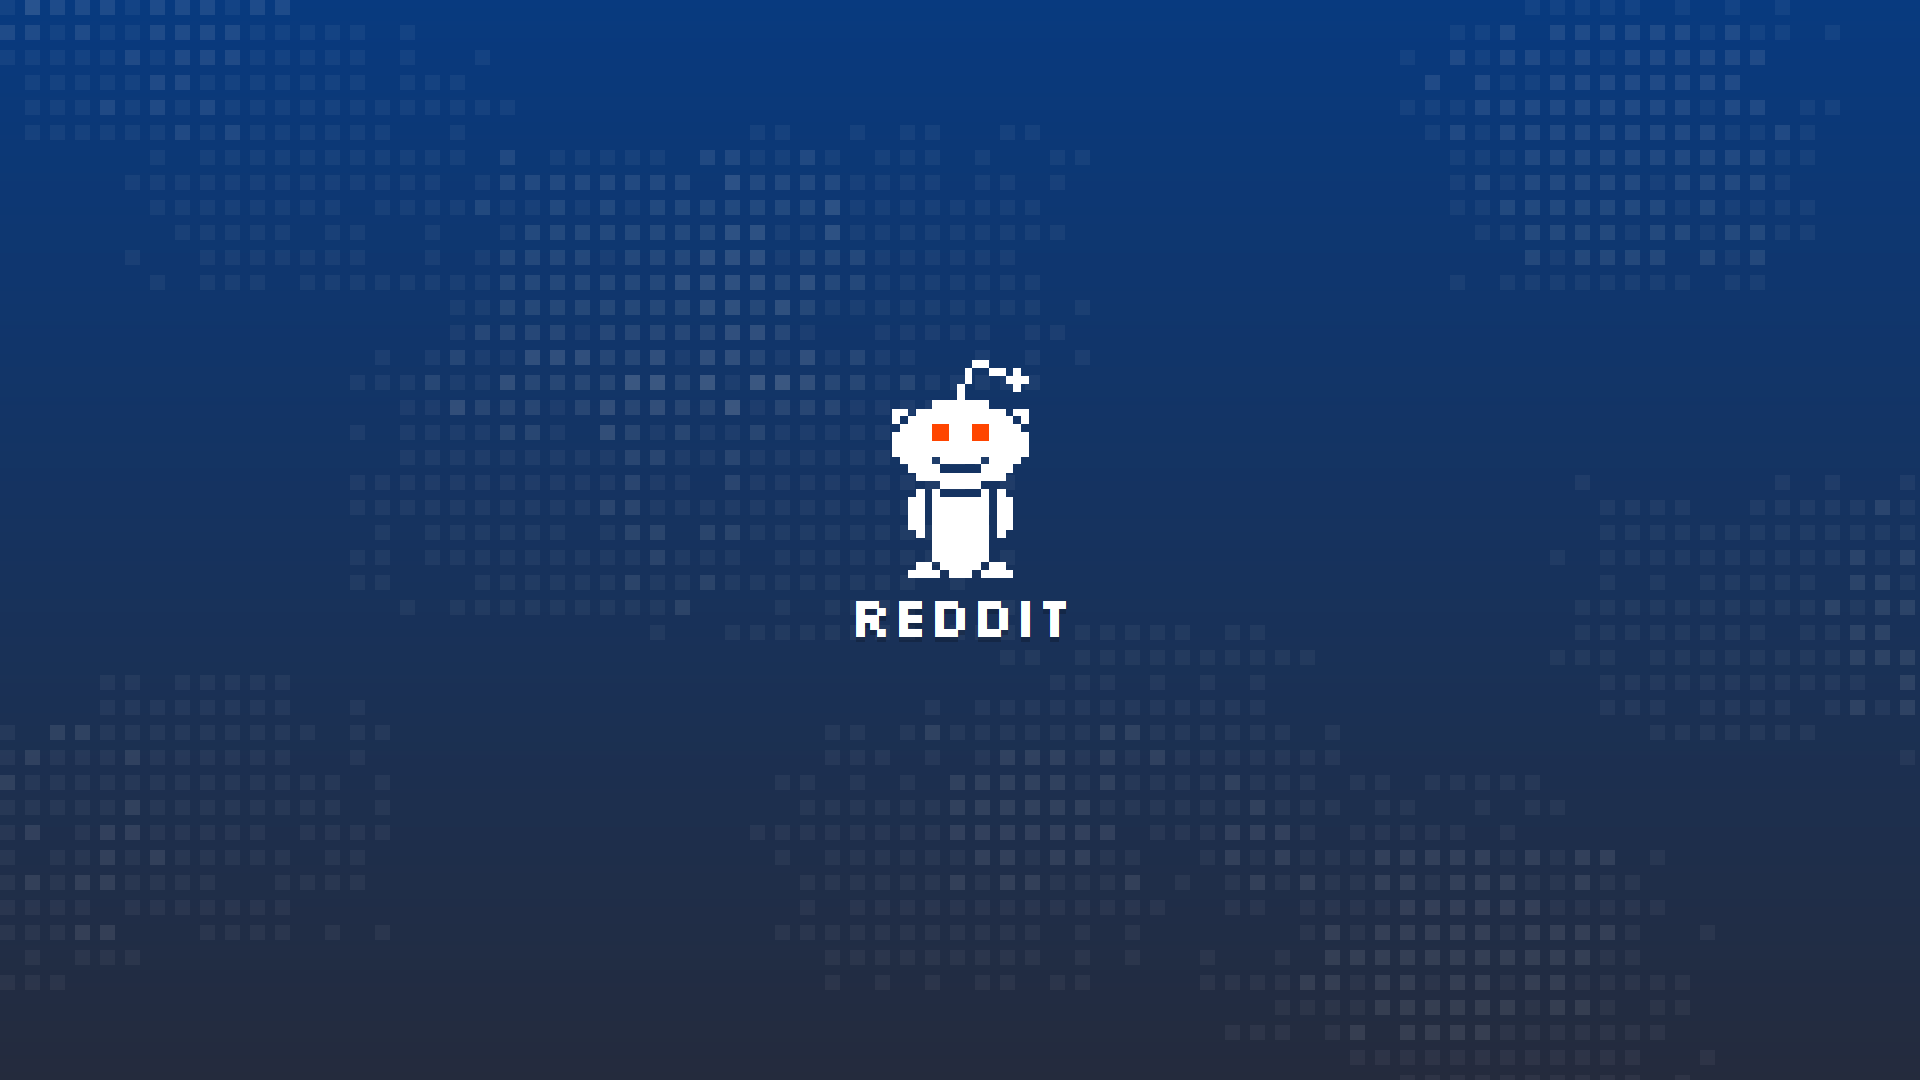 Reddit Hd Logo 4k Wallpapers Images Backgrounds Photos